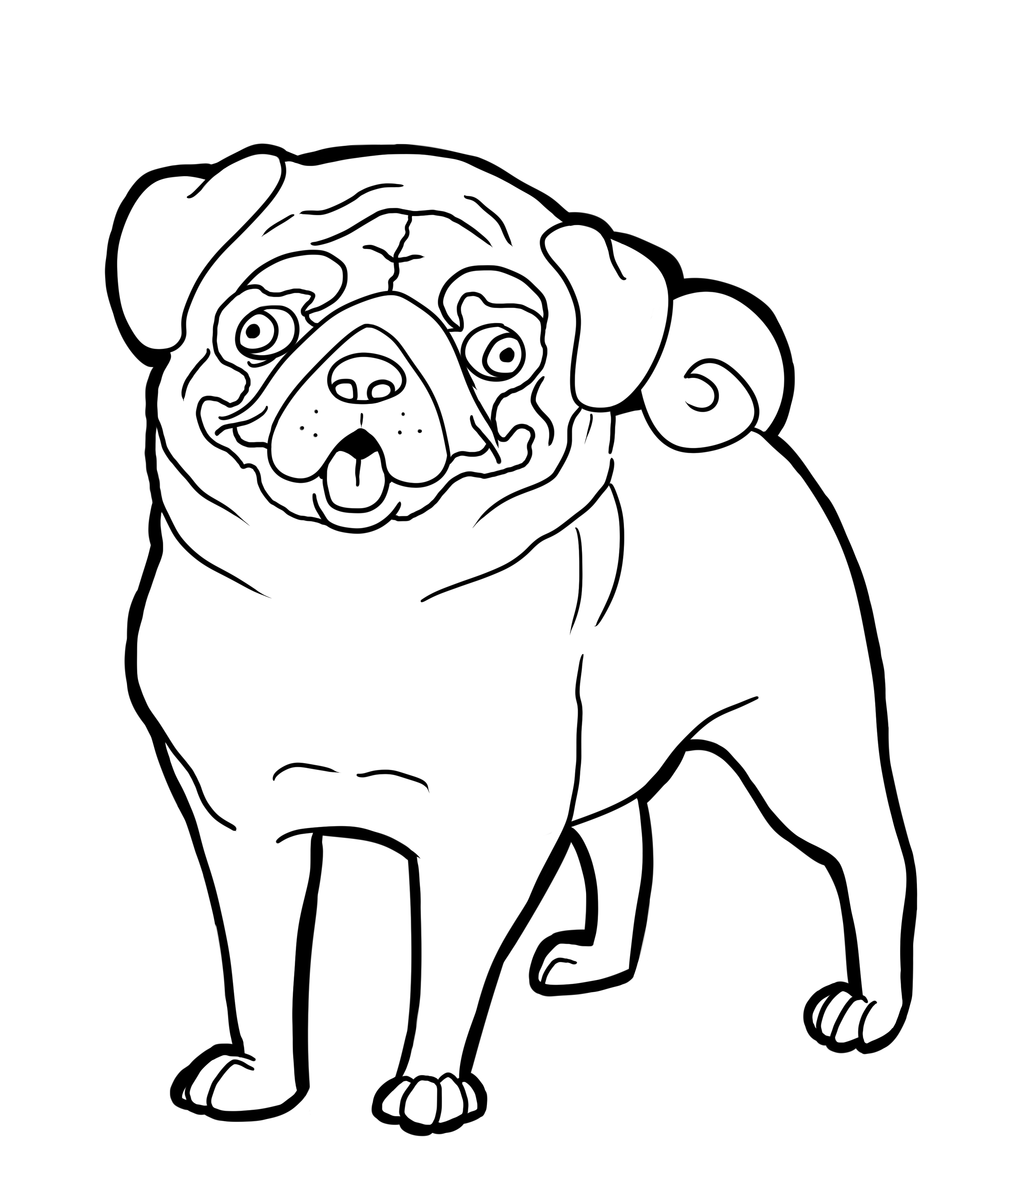 Pug coloring pages best coloring pages for kids for Coloring pages to color online for free